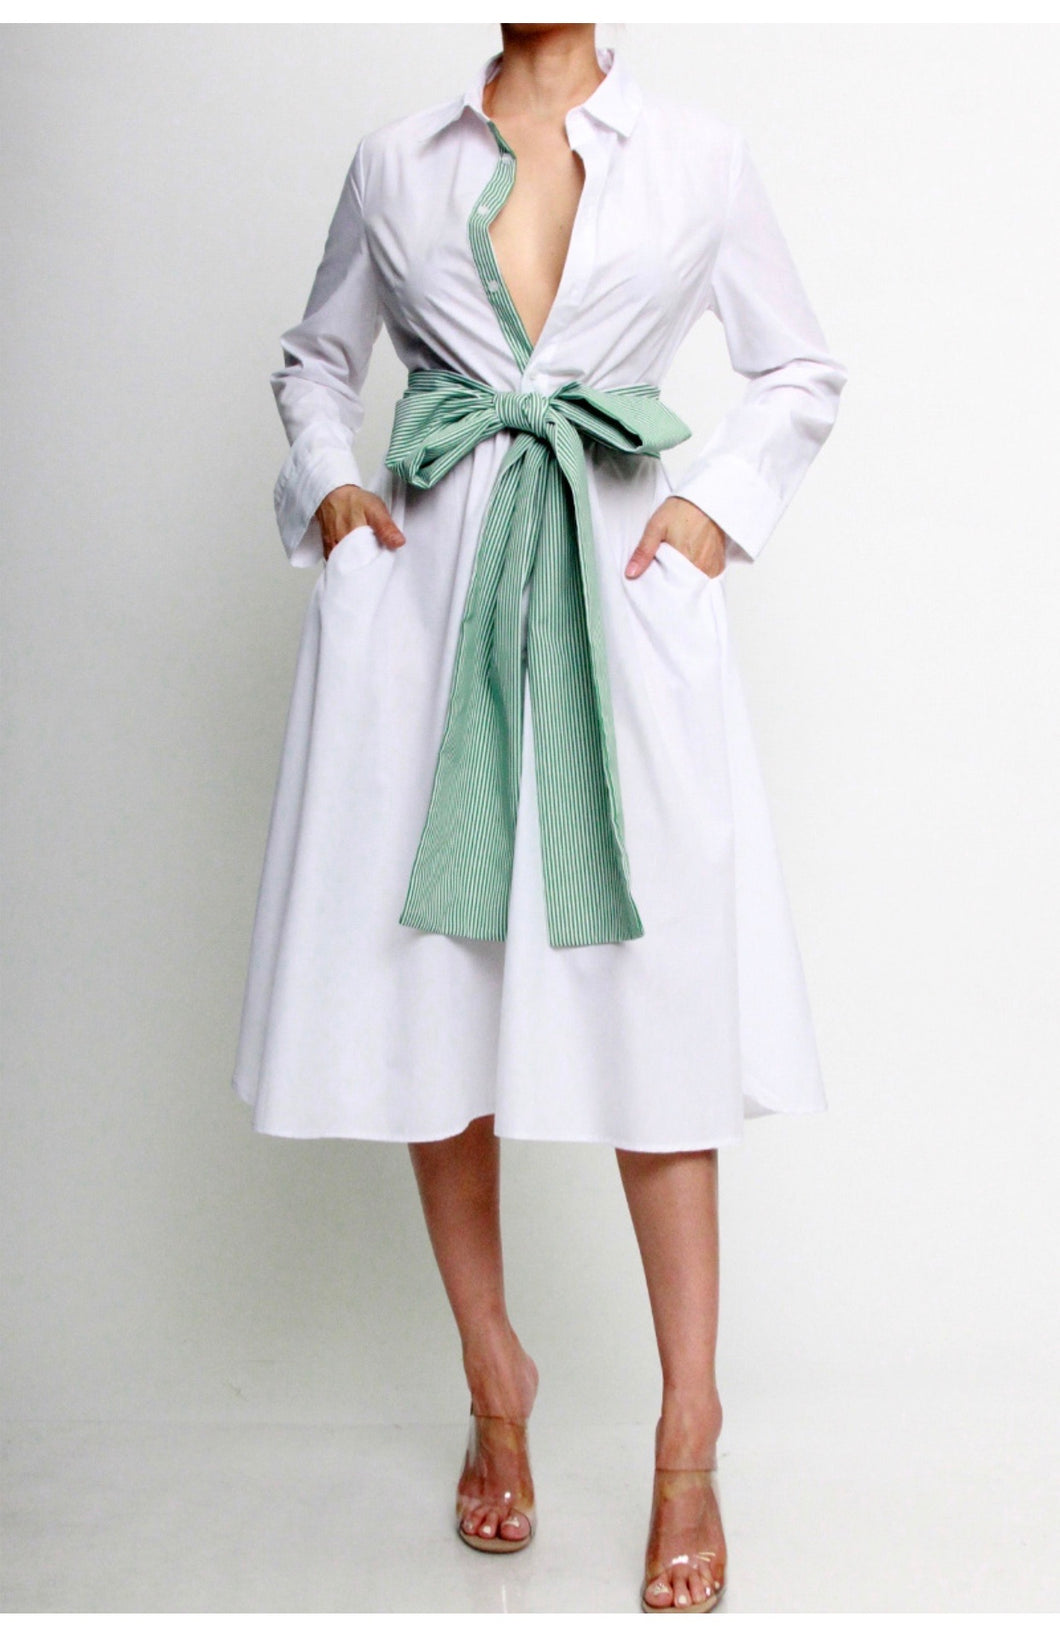 Shirt dress with Green tie belt